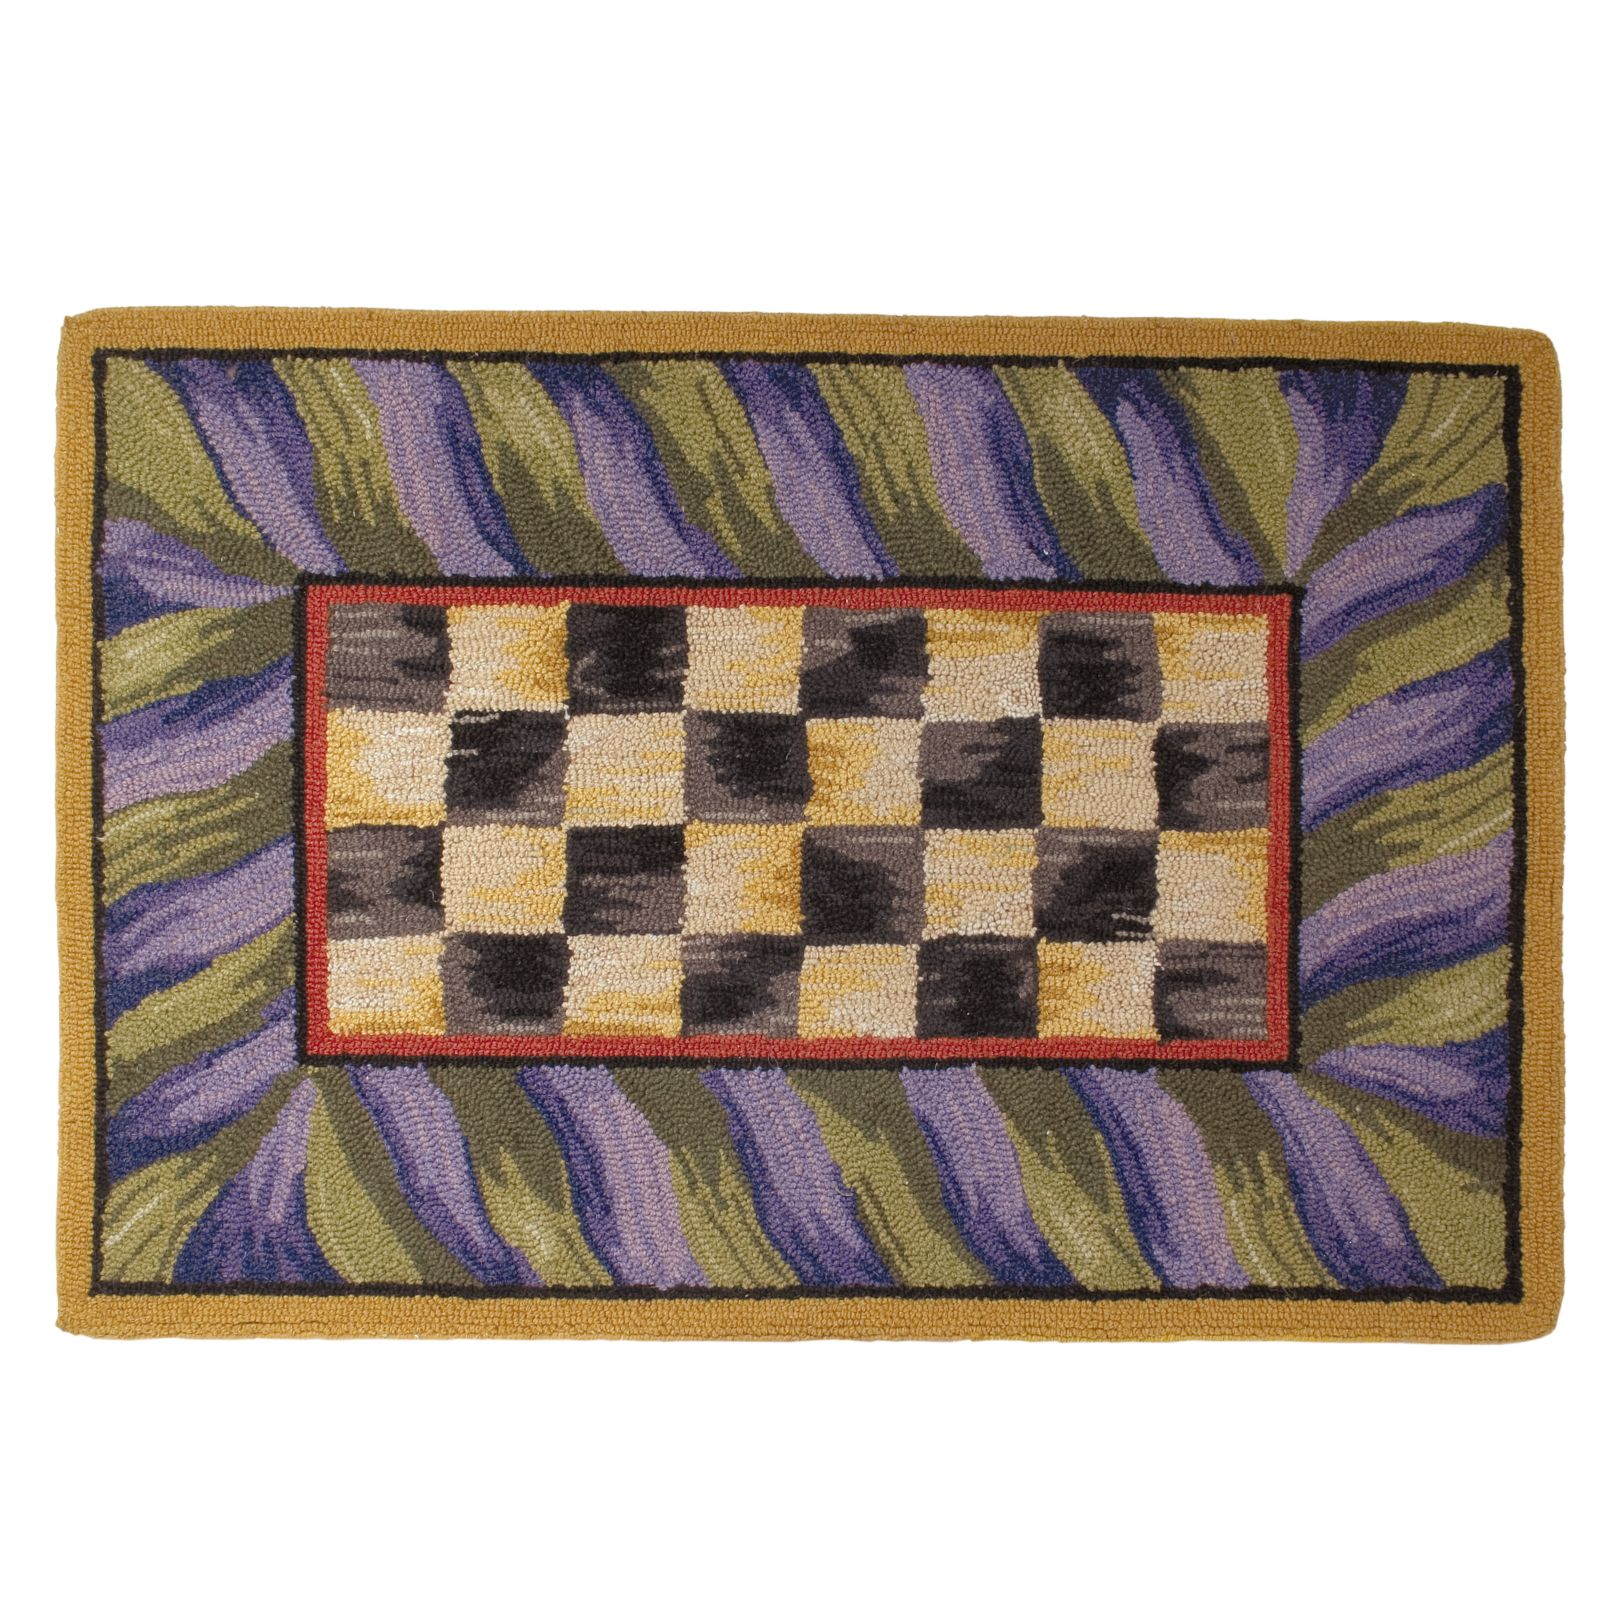 Ковер 61х91 см Courtly Check Purple & Green 350-08013